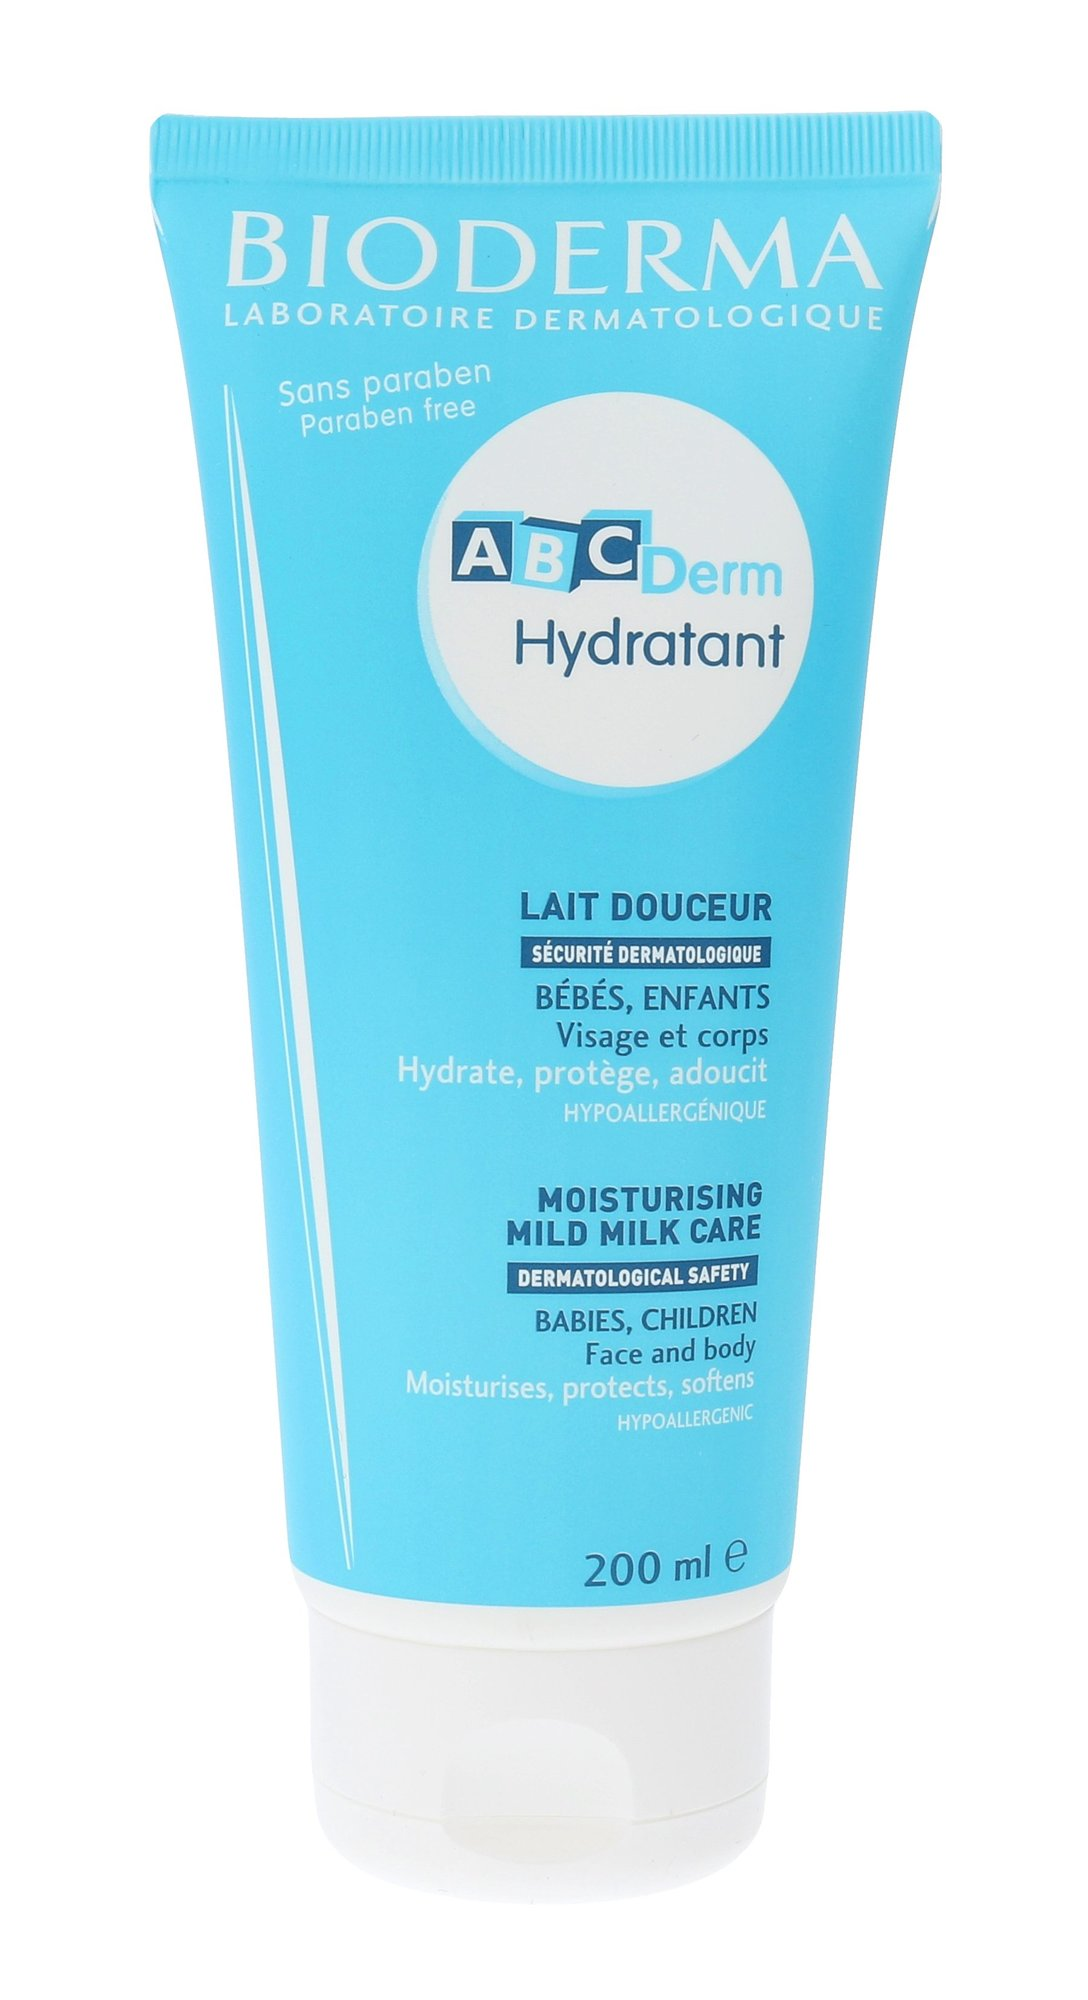 BIODERMA ABCDerm Body Lotion 200ml  Hydratant